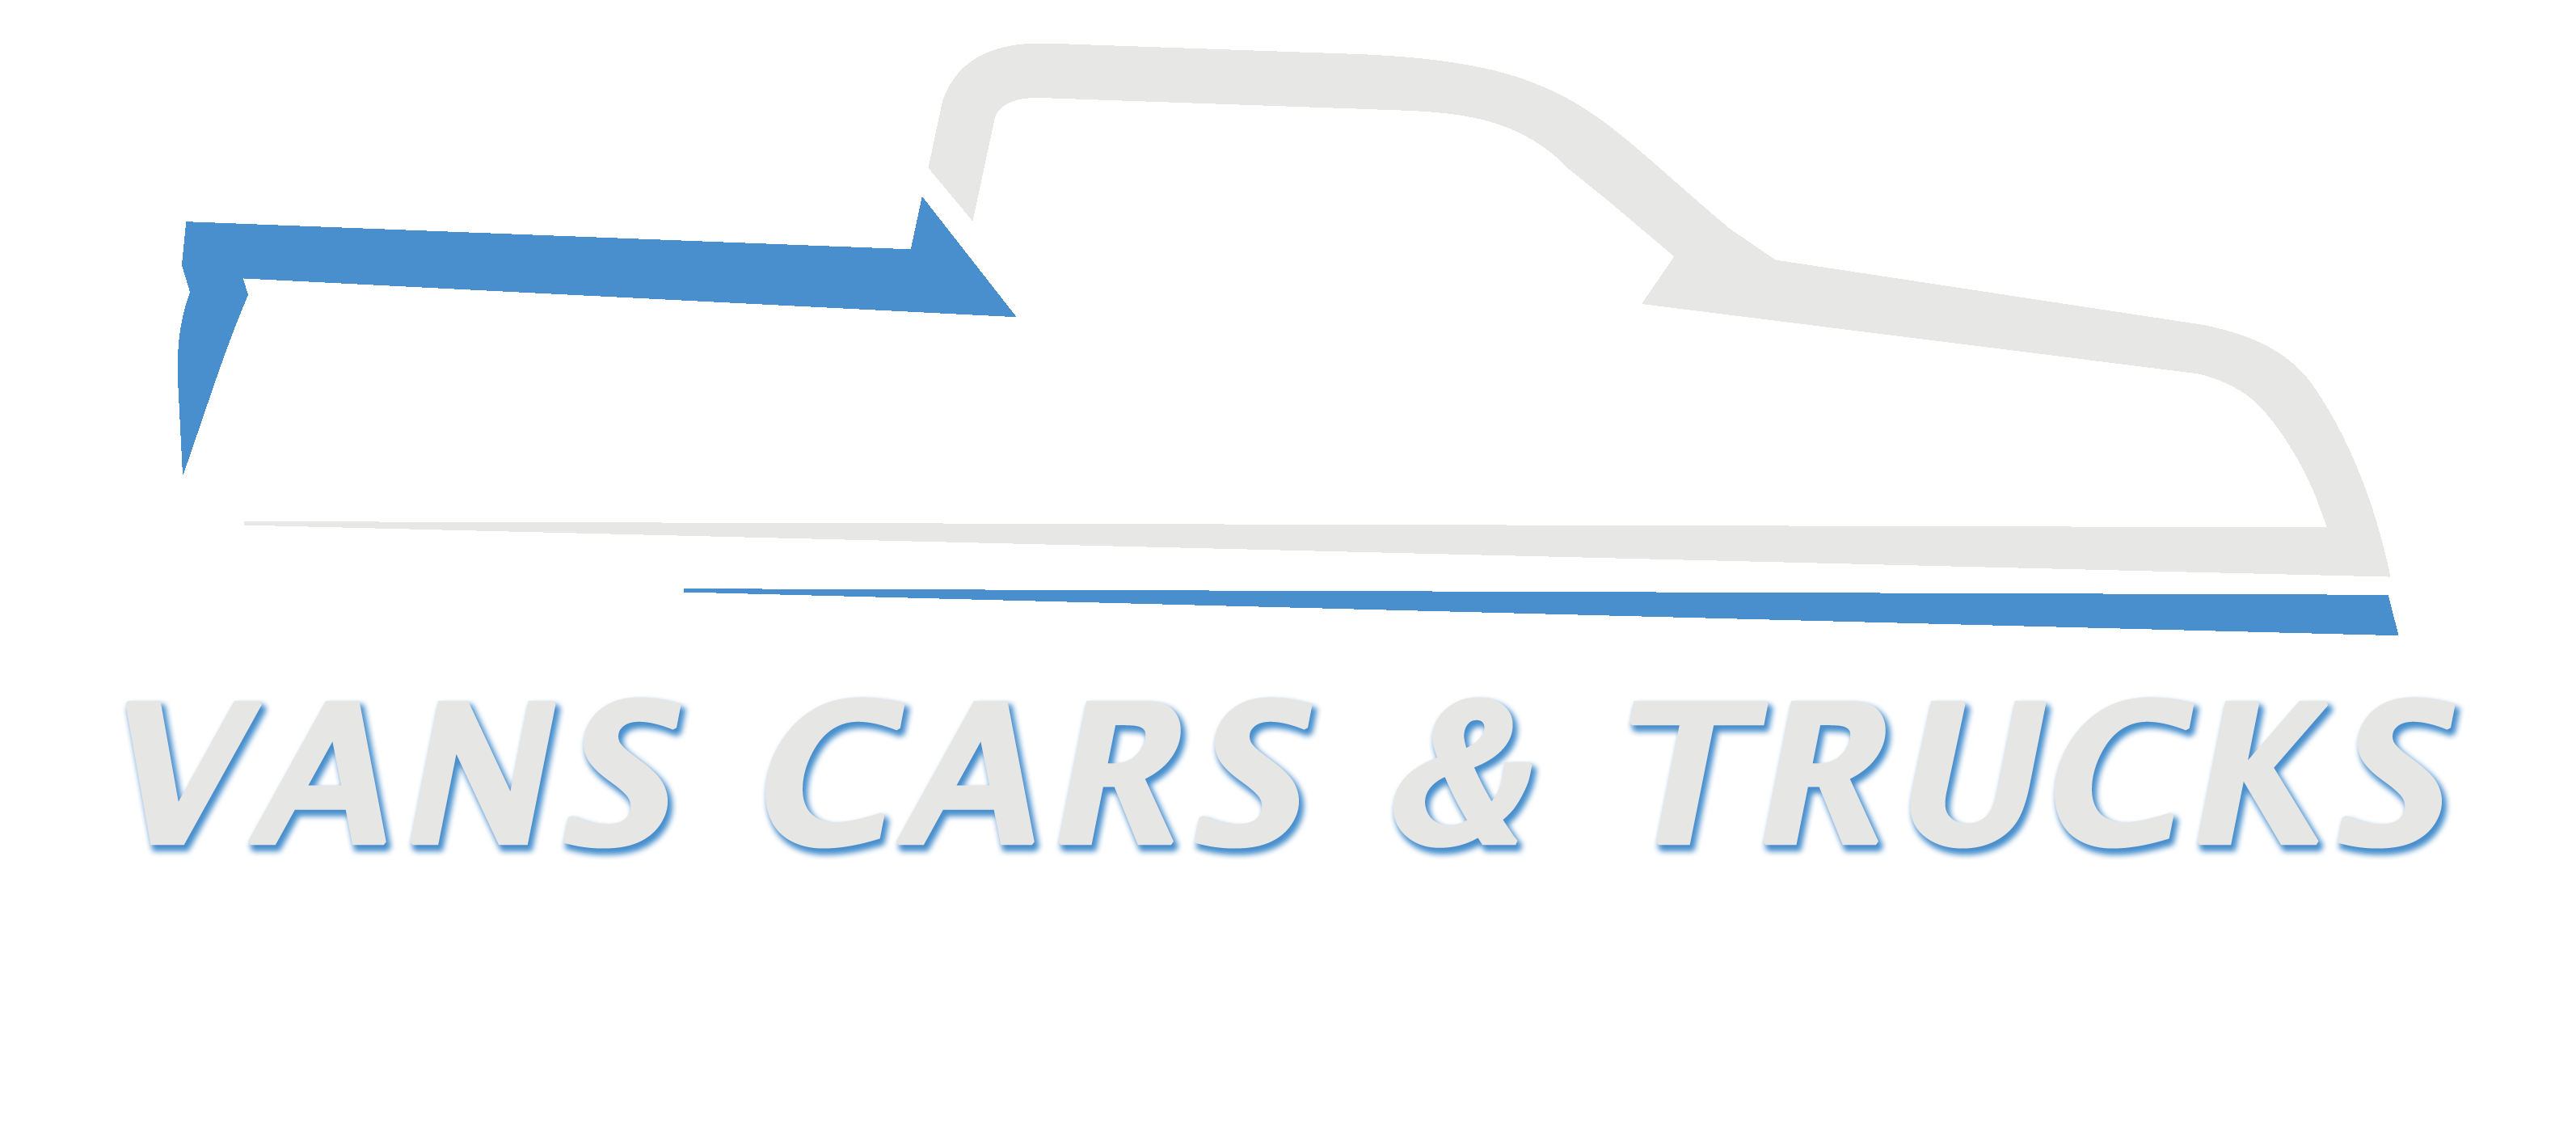 Used Cars And Trucks >> Inventory Vans Cars And Trucks Used Cars For Sale Brooksville Fl